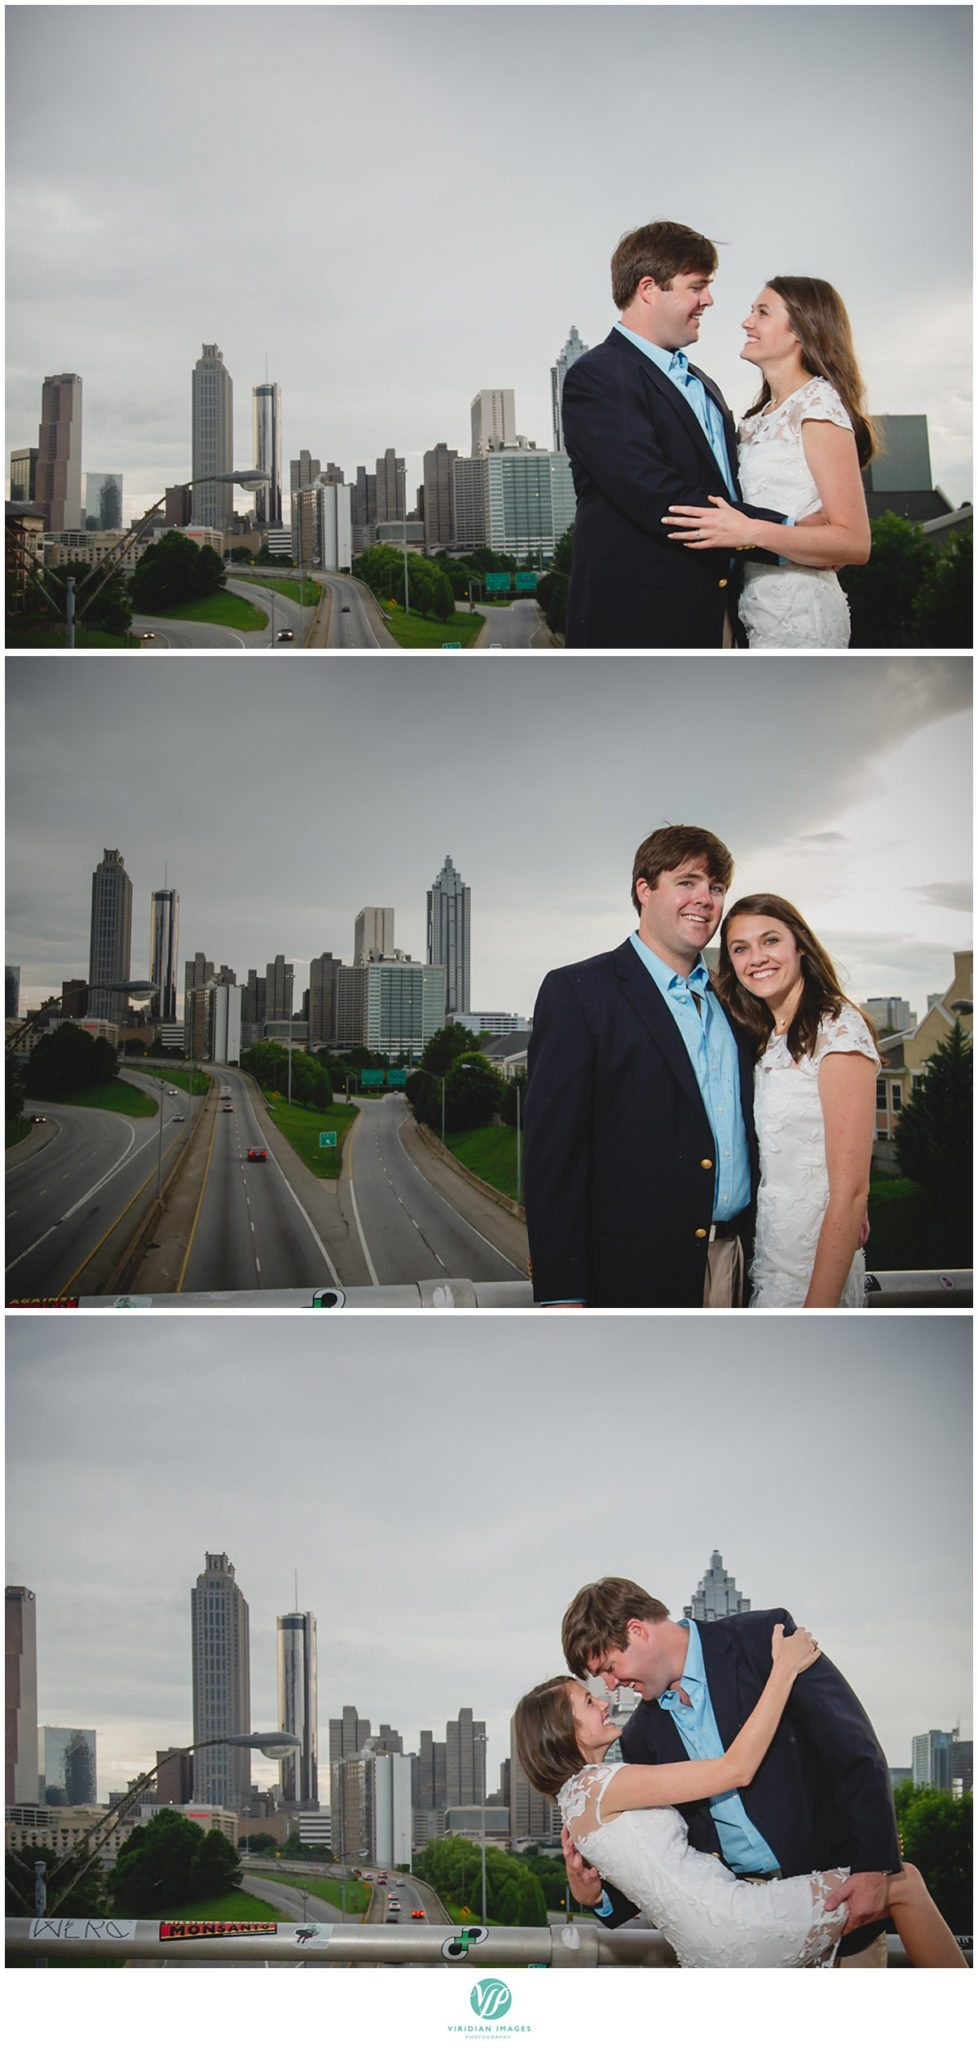 Atlanta-duck-poind-engagement-session-viridian-images-photography-photo-19